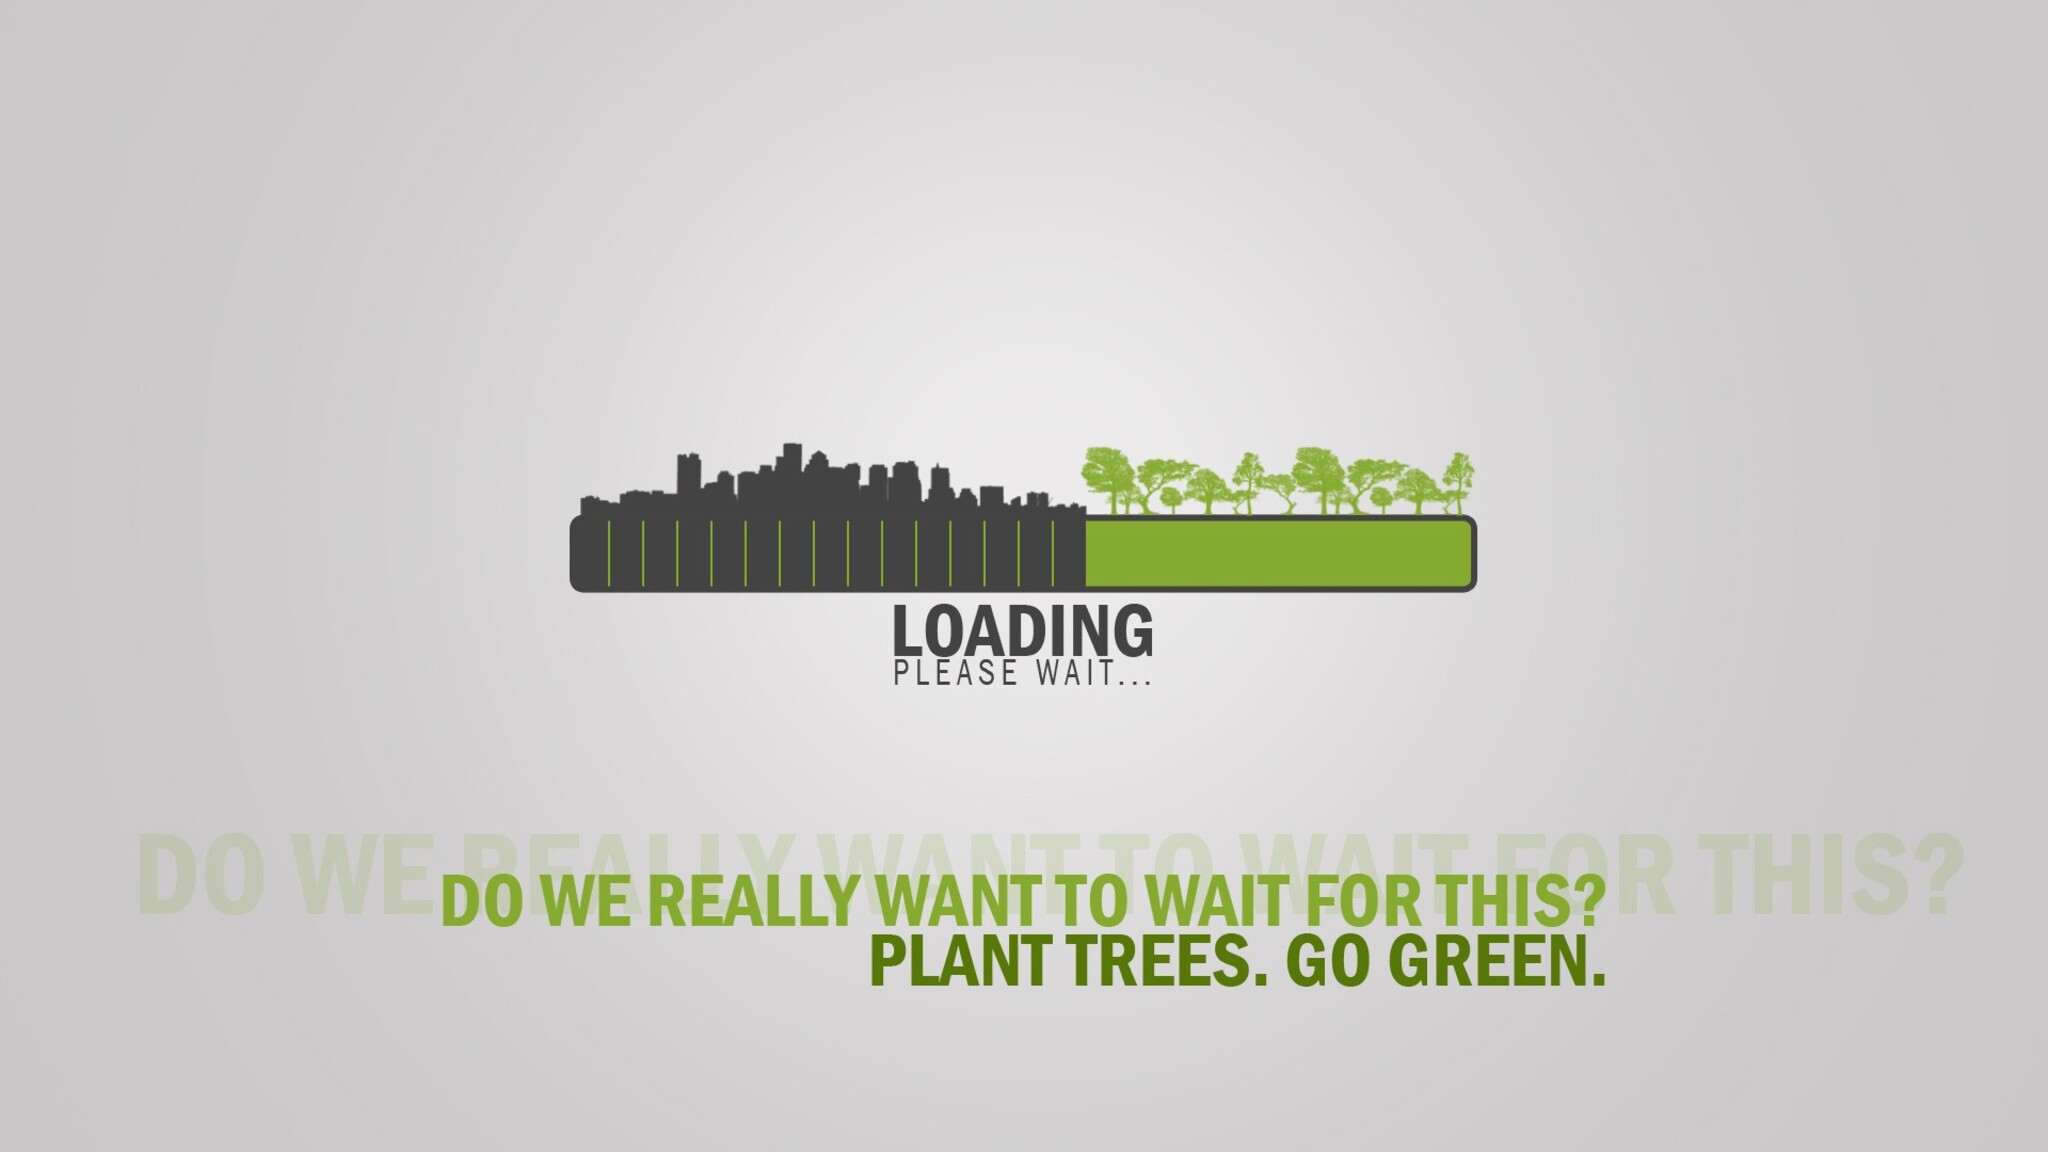 Go Green Inspirational Typography Image